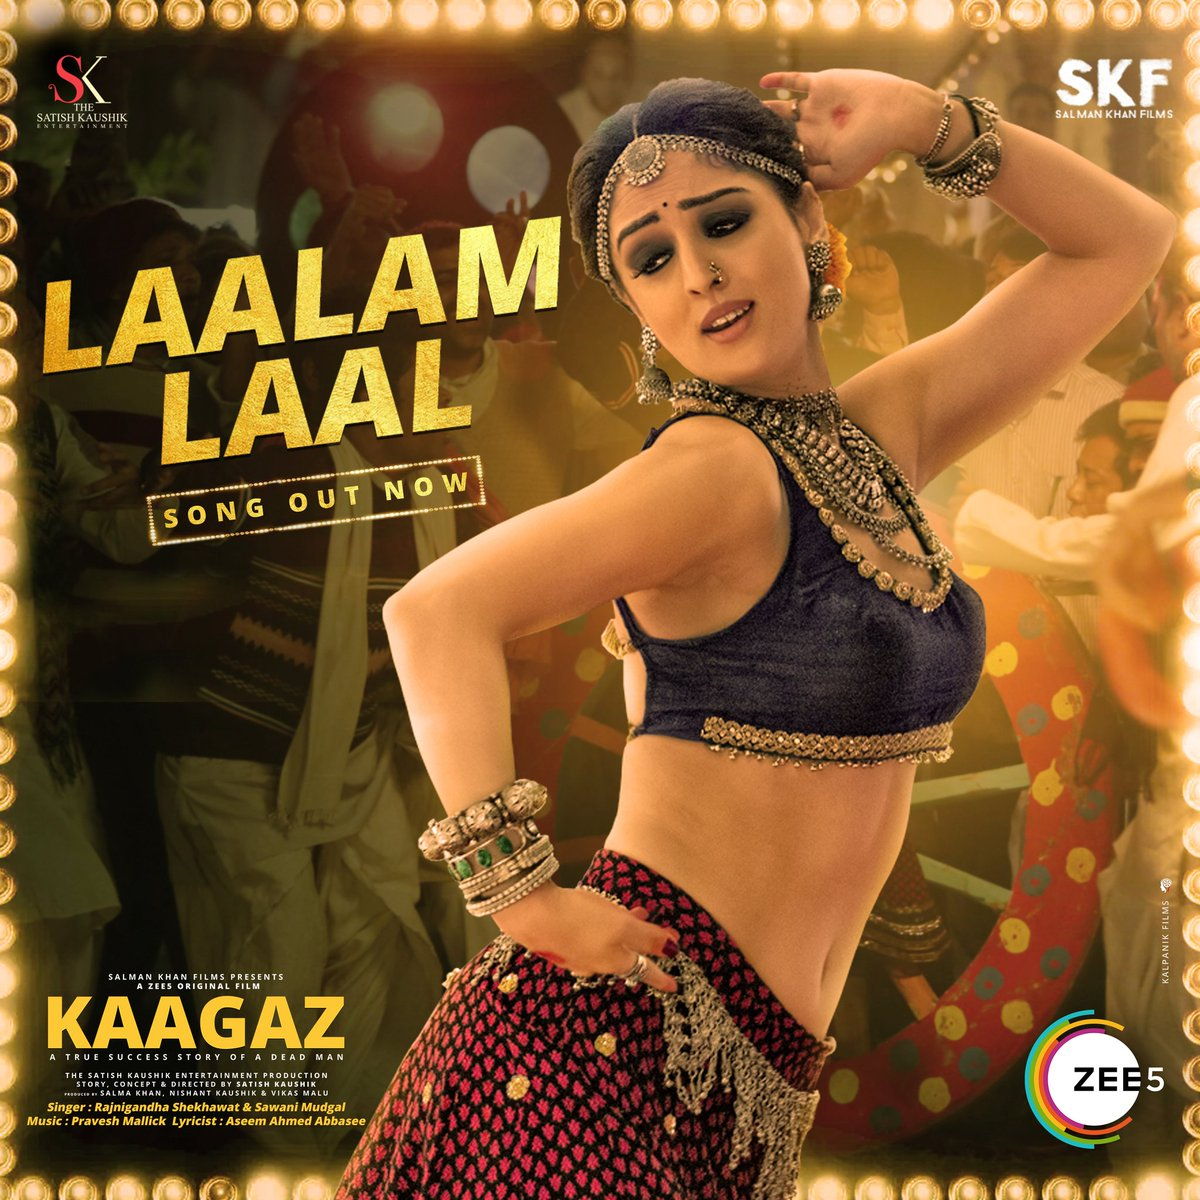 Bharal Lal Mritak's thumkas and Sandeepa Dhar's moves in #LaalamLaal are lighting up the stage in #Kaagaz Song out now! #ProofHaiKya